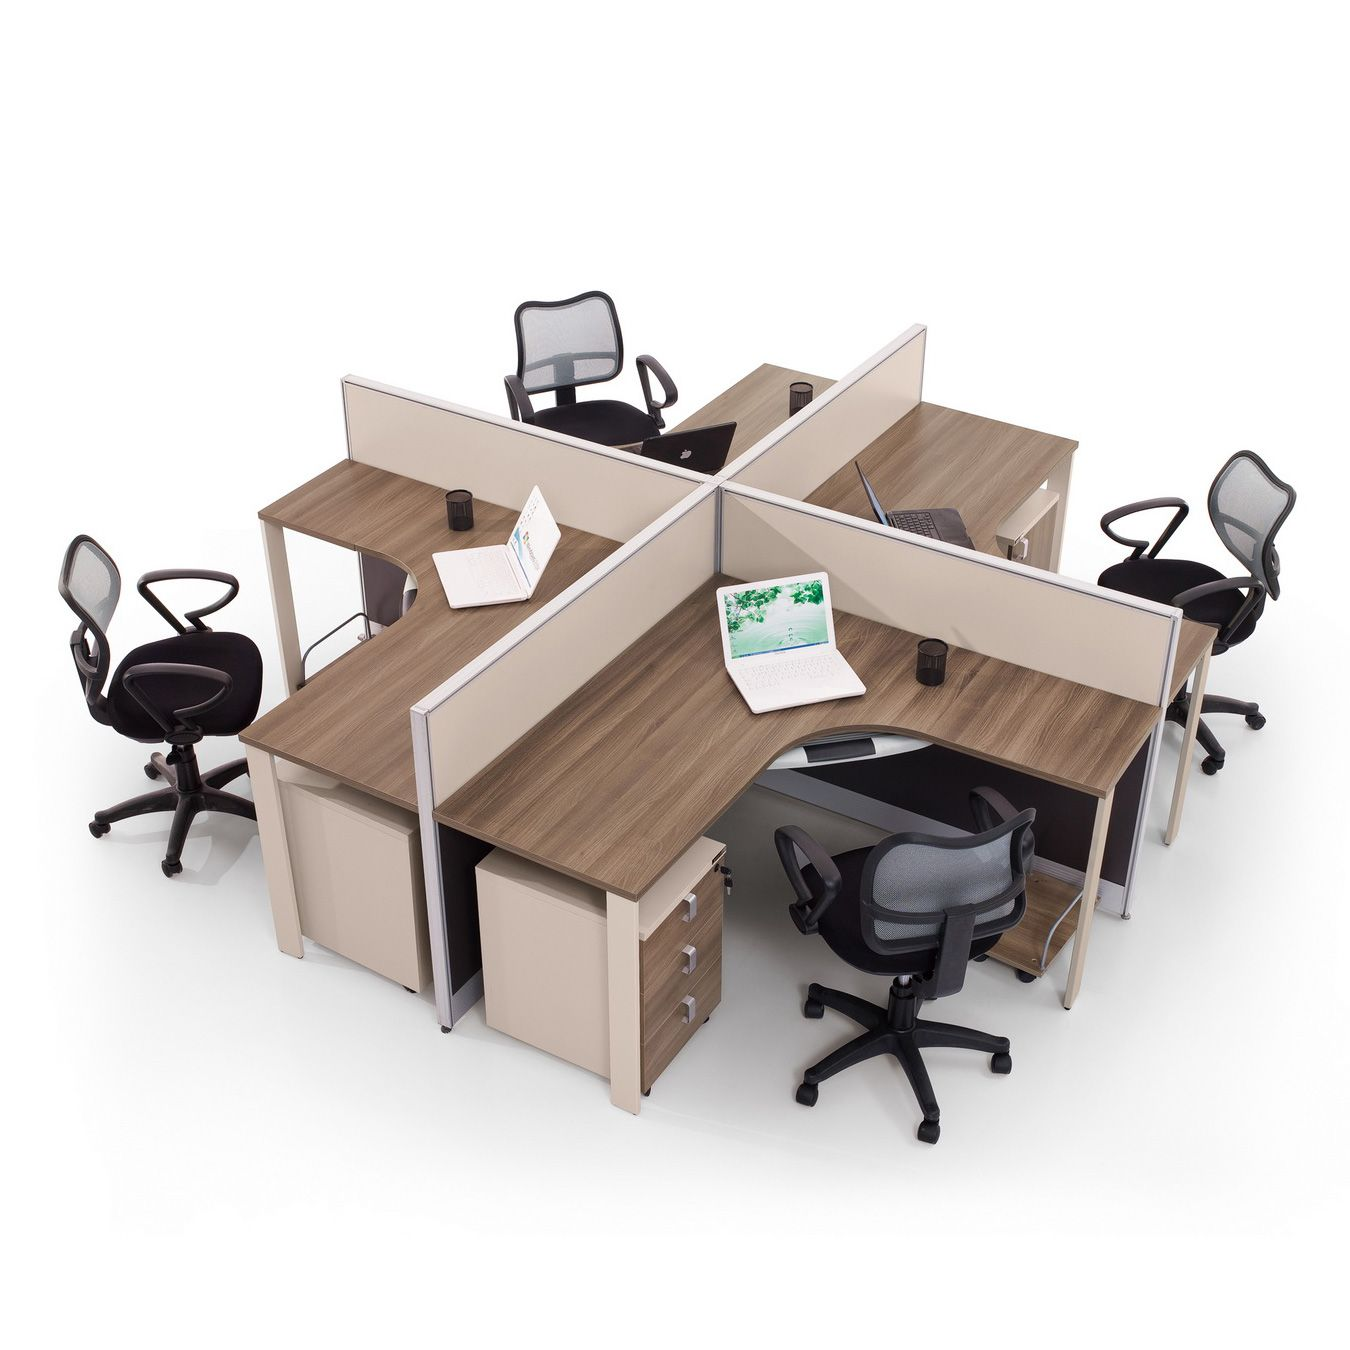 Workstation Furniture Pin By Riddhi Jain On Workstations Idea Home Office Furniture